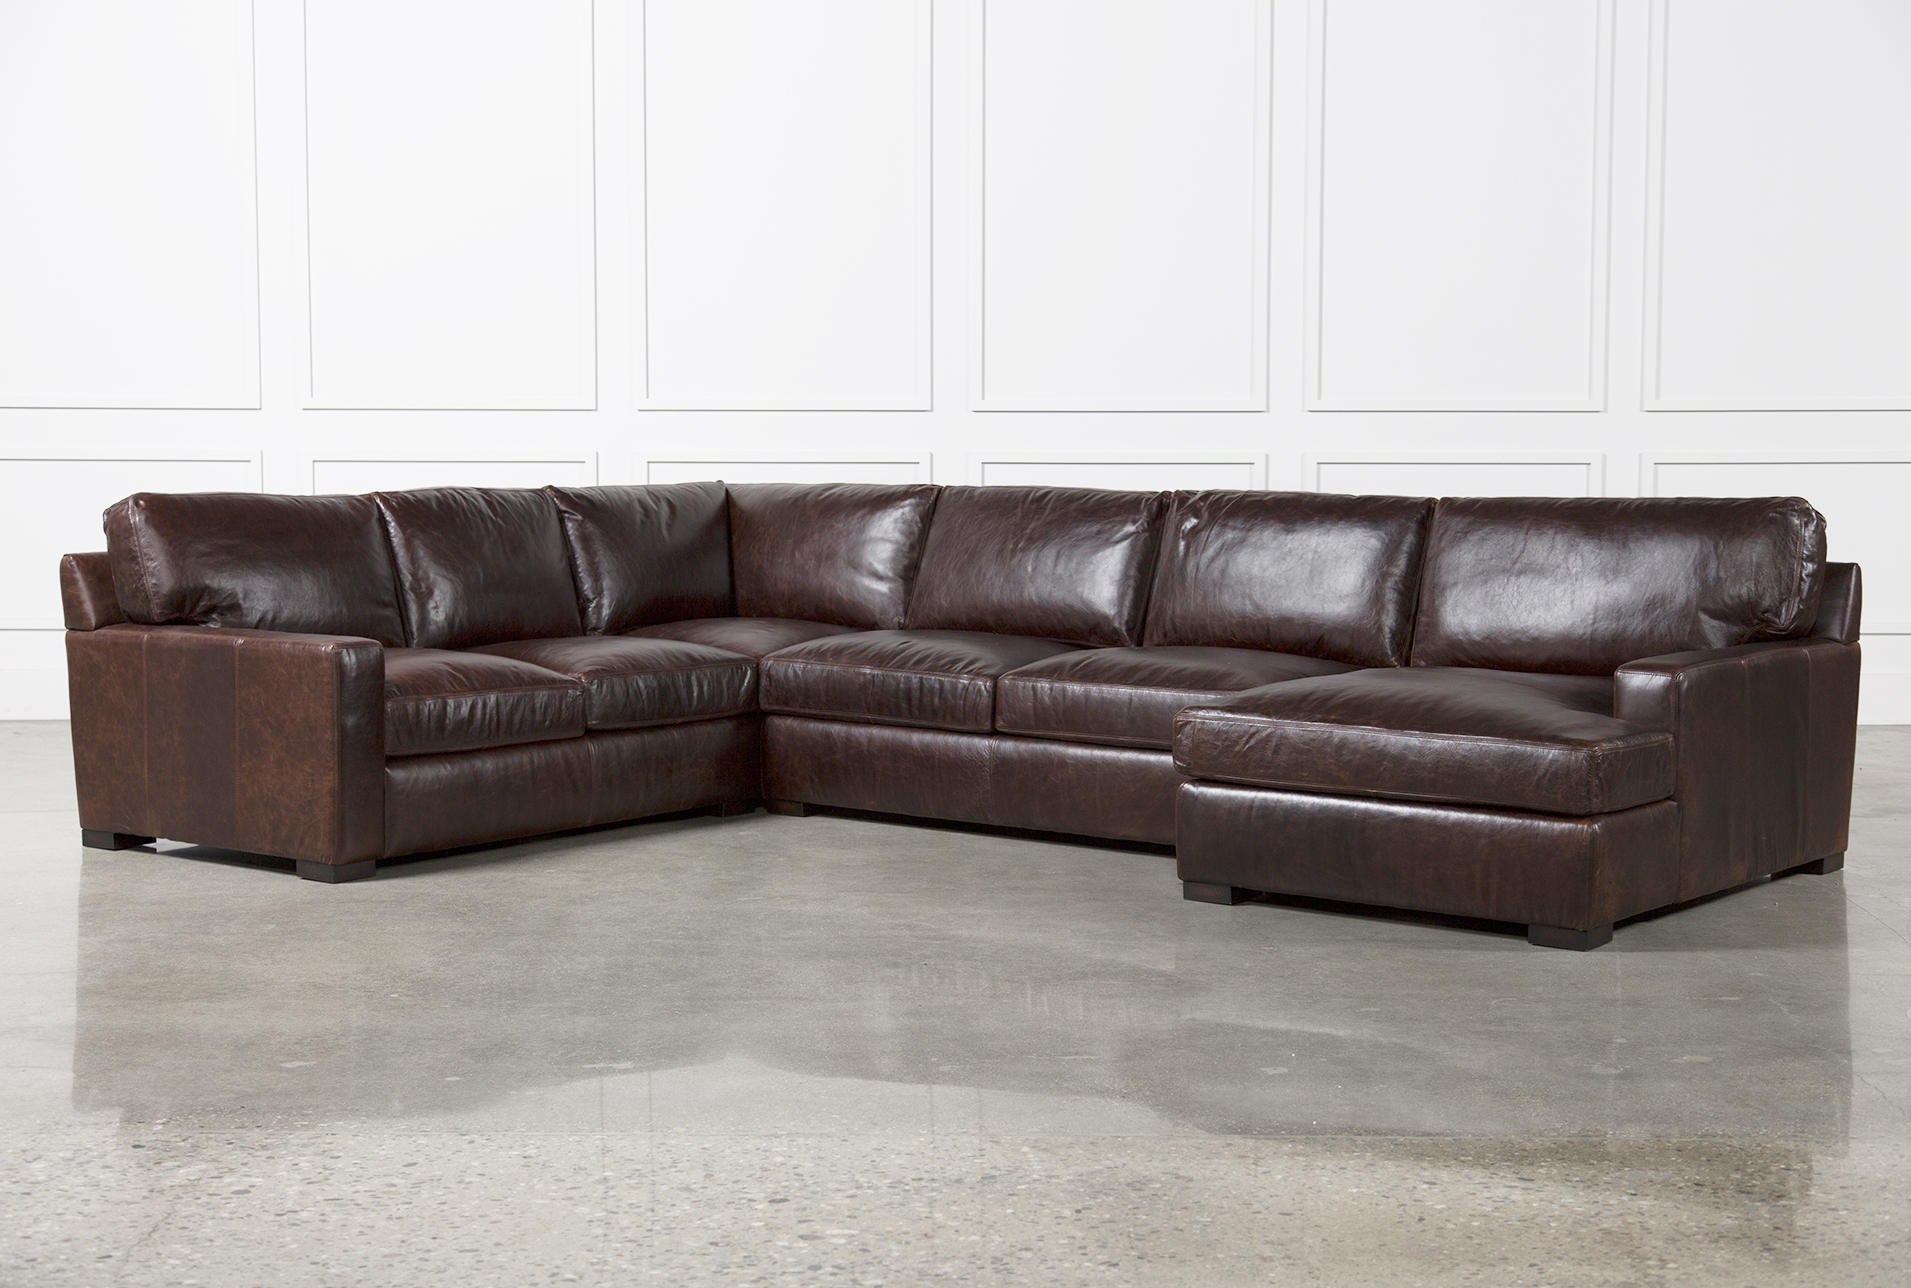 gordon 3 piece sectional w raf chaise living spaces rh livingspaces com leather sectional sofa bed leather sectional sofa clearance